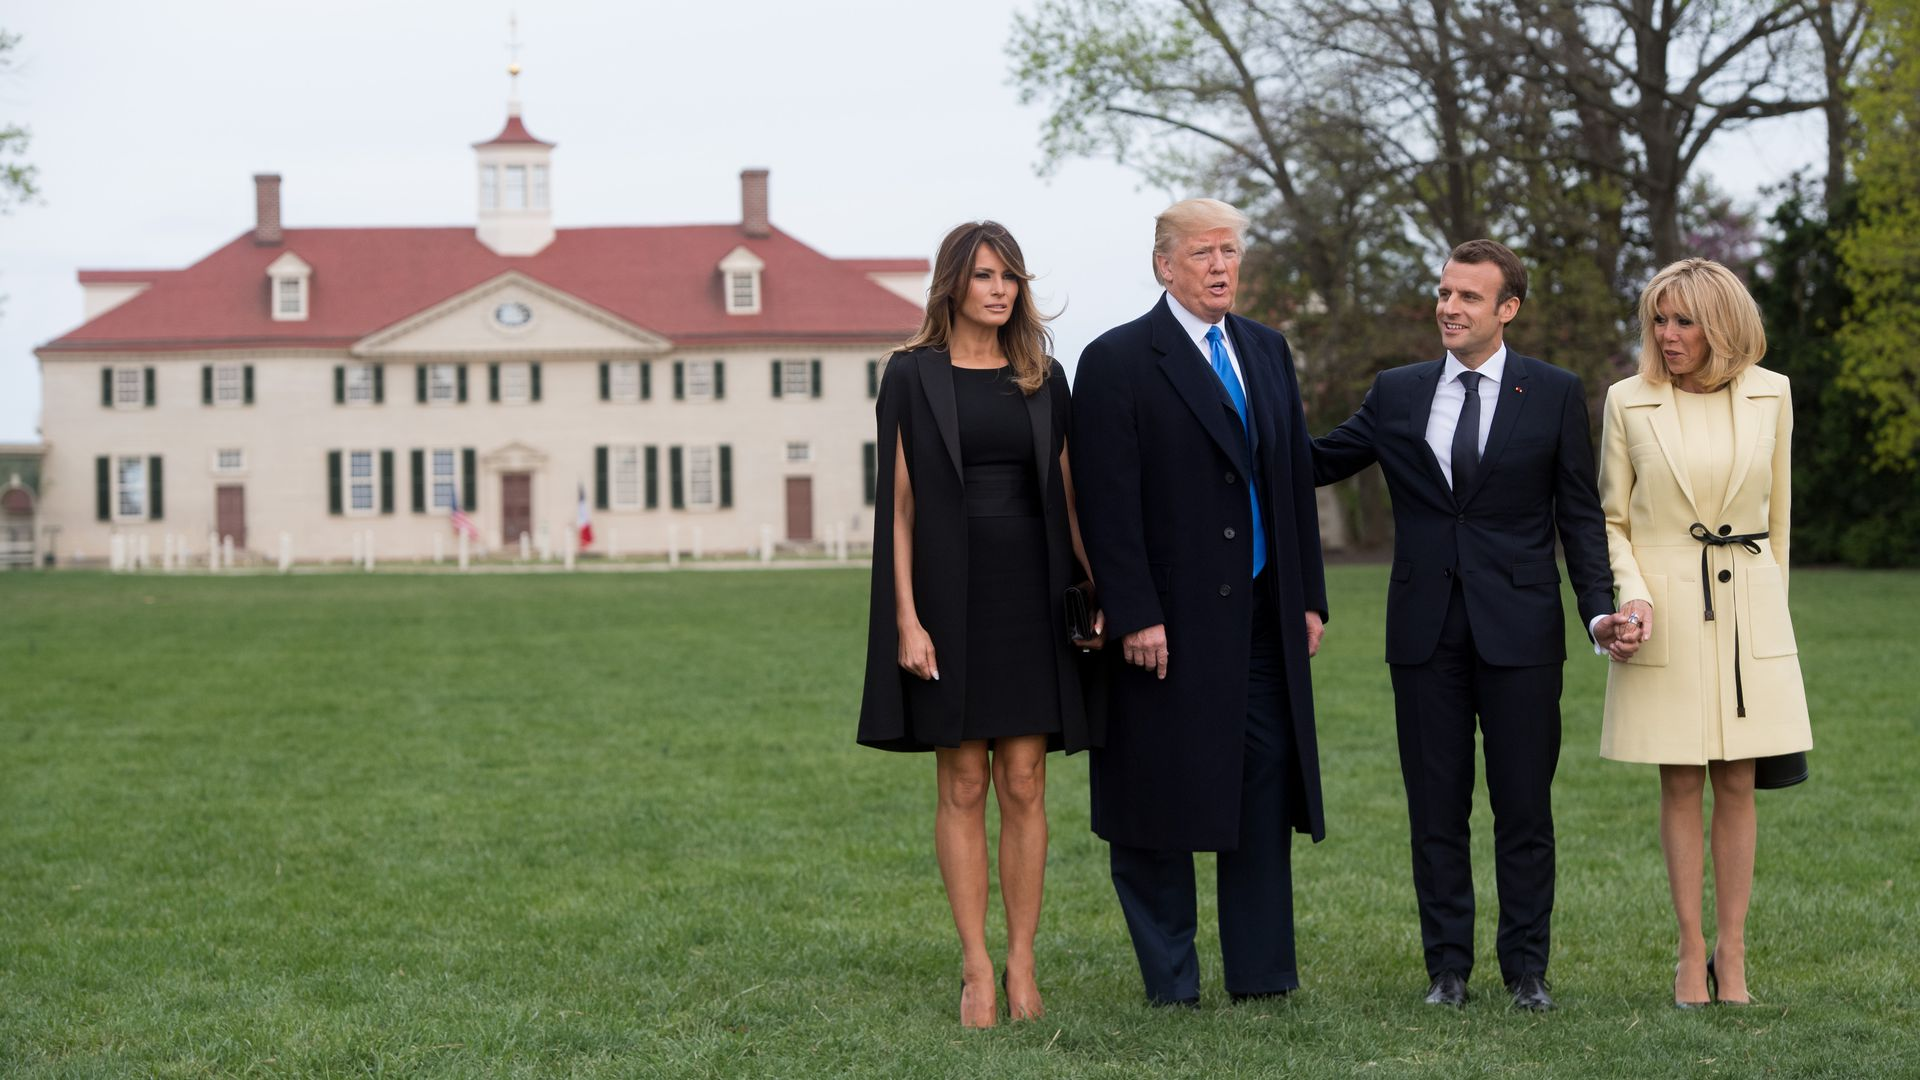 Melania, Trump, Macron and Brigitte stand in front of George Washington's home